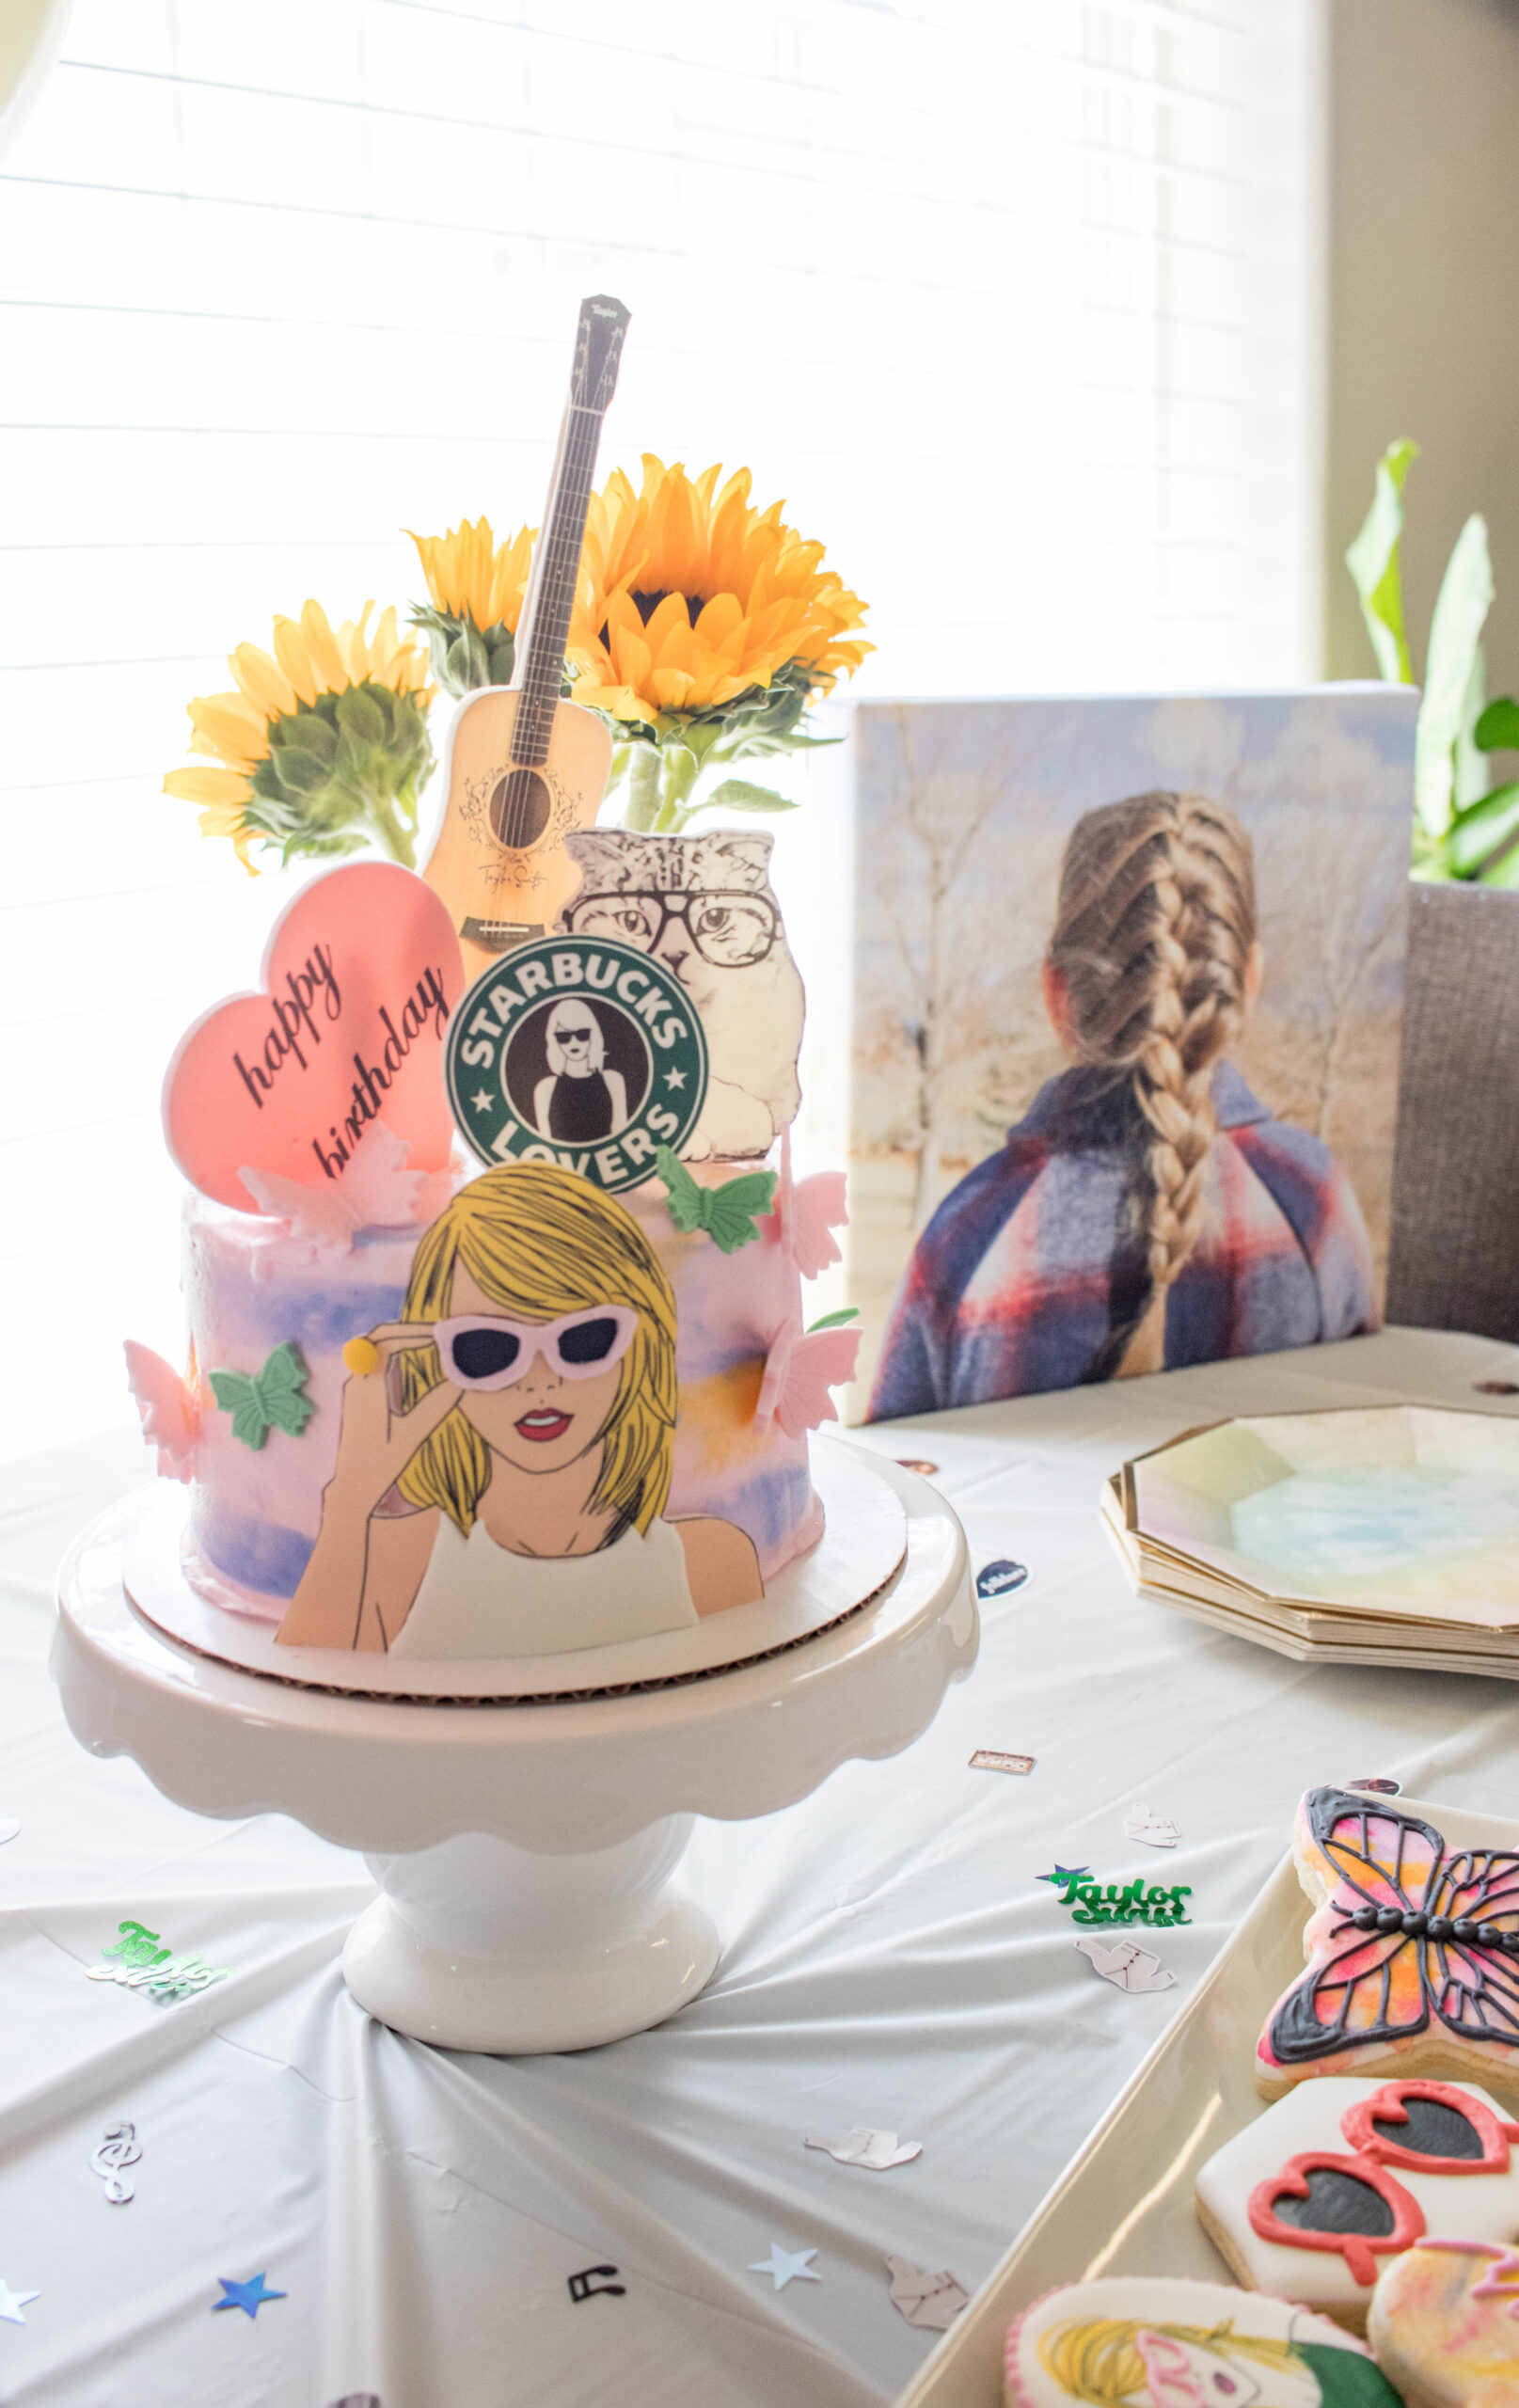 taylor swift 6th birthday party #birthdayparty #diyparty #taylorswiftparty